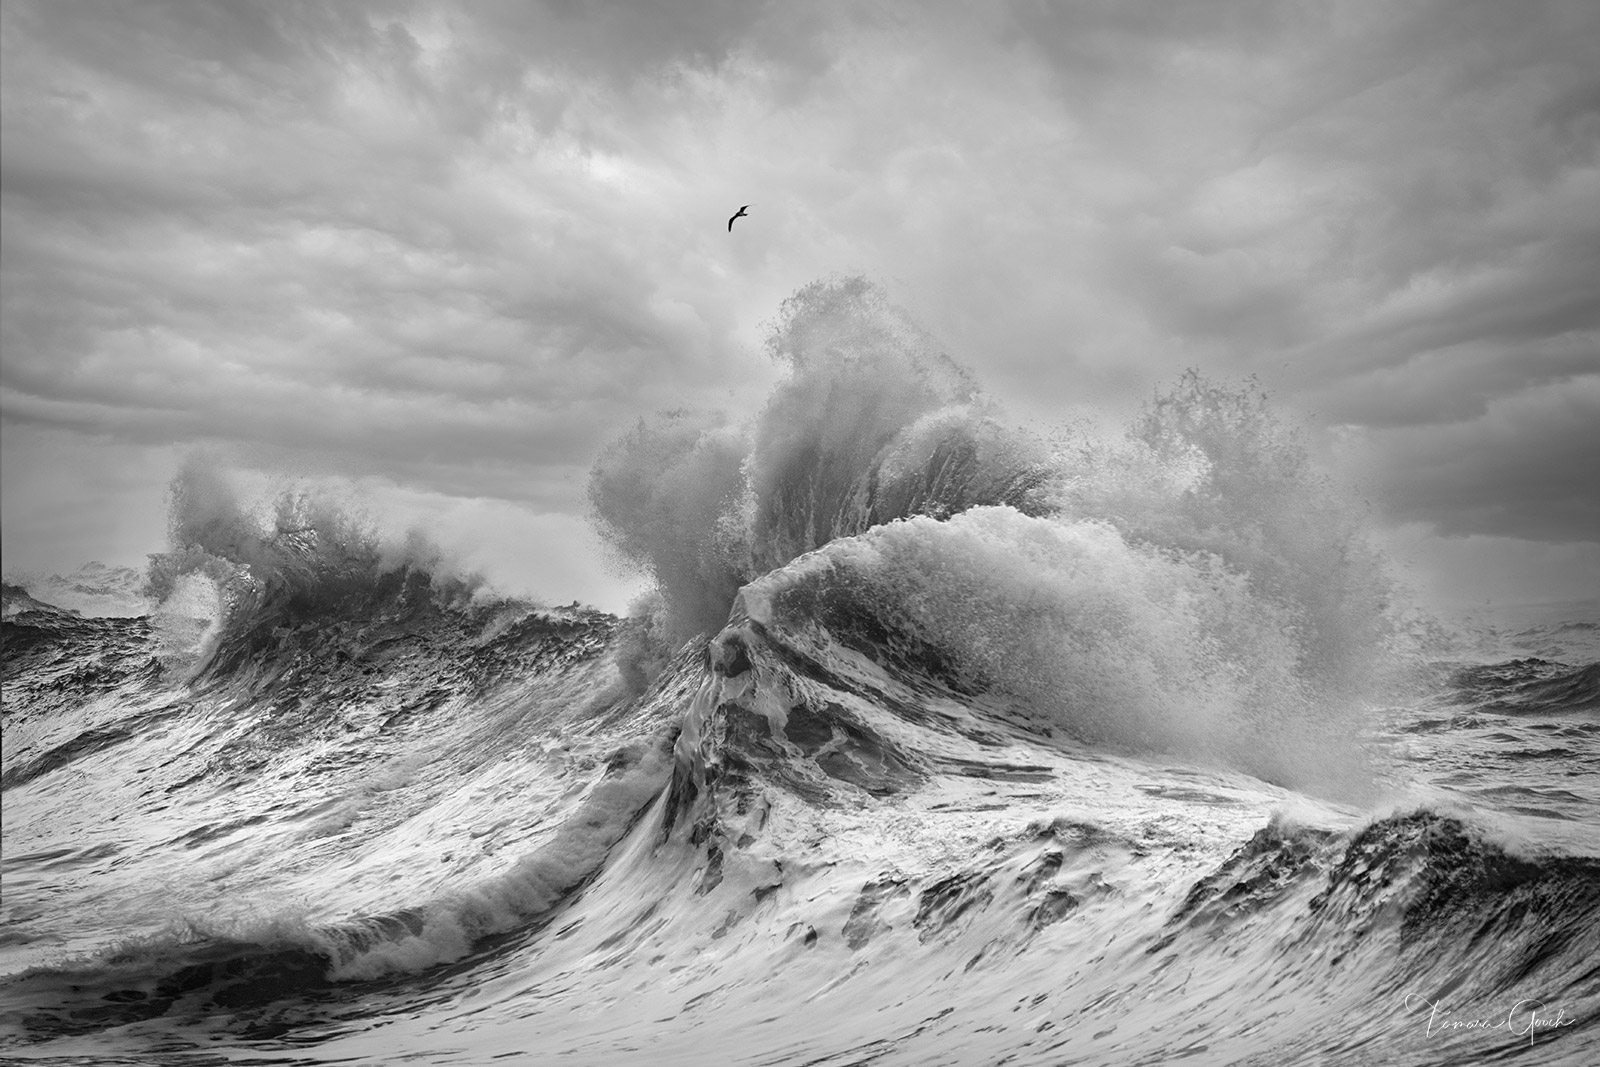 Stormy Seas is a black and white limited edition fine art photo print of the ocean and it's turbulent seas and amazing wave formations that occur during a storm